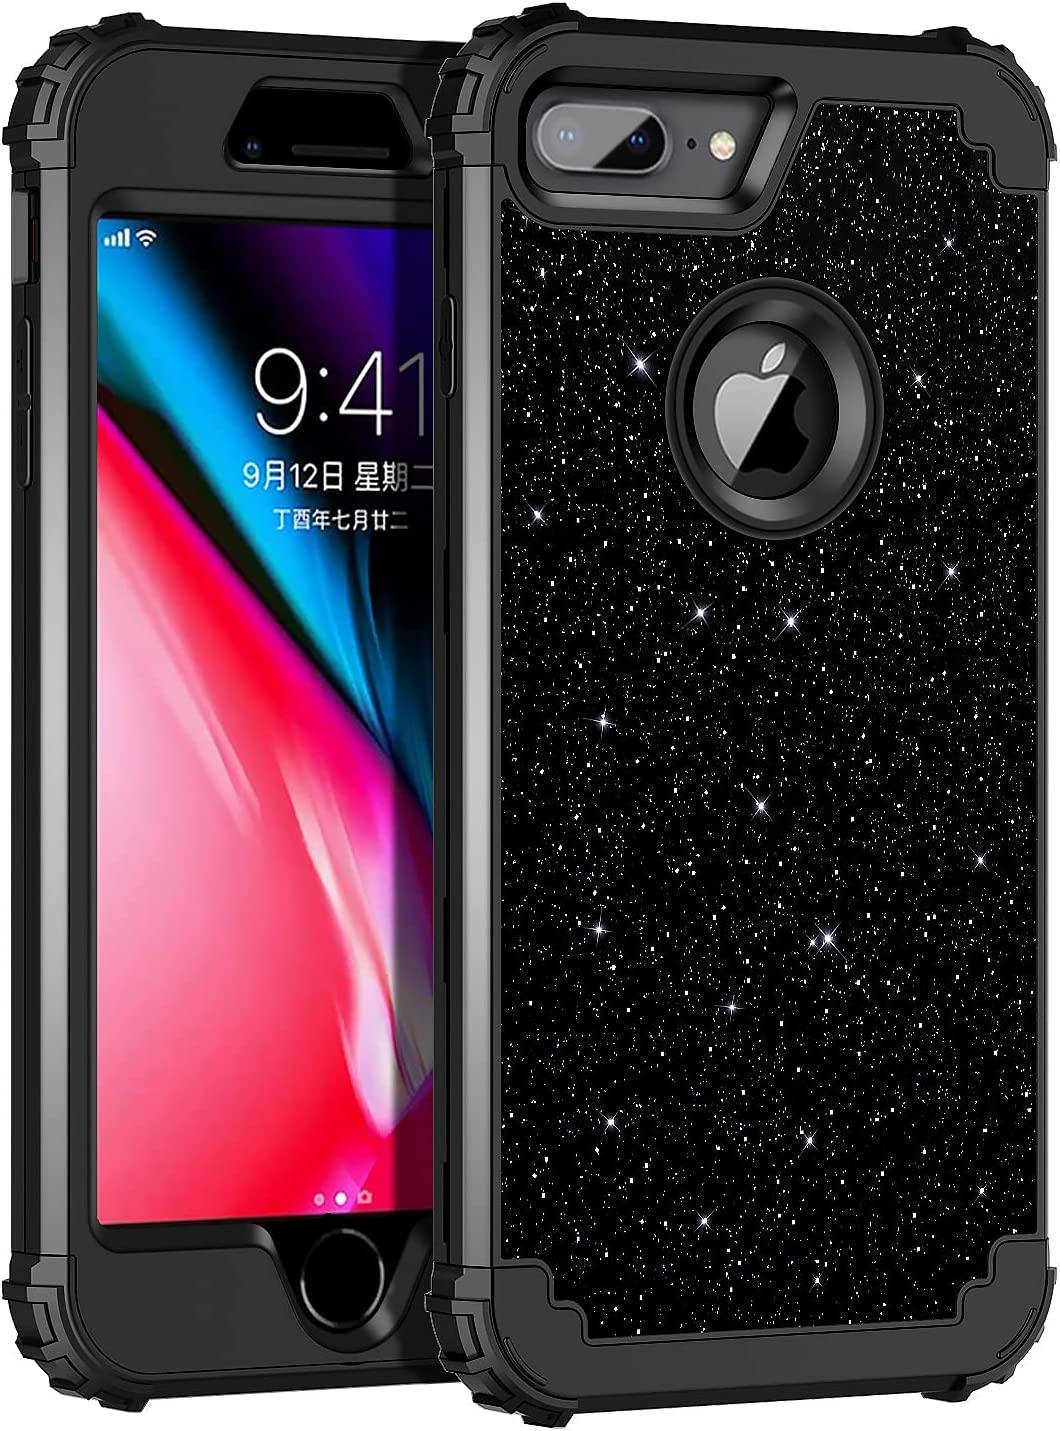 Lontect for iPhone 8 Plus Case, iPhone 7 Plus Case Glitter Sparkle Bling 3 in 1 Heavy Duty Hybrid Sturdy High Impact Shockproof Cover Case for Apple iPhone 8 Plus/7 Plus 5.5 inch, Black